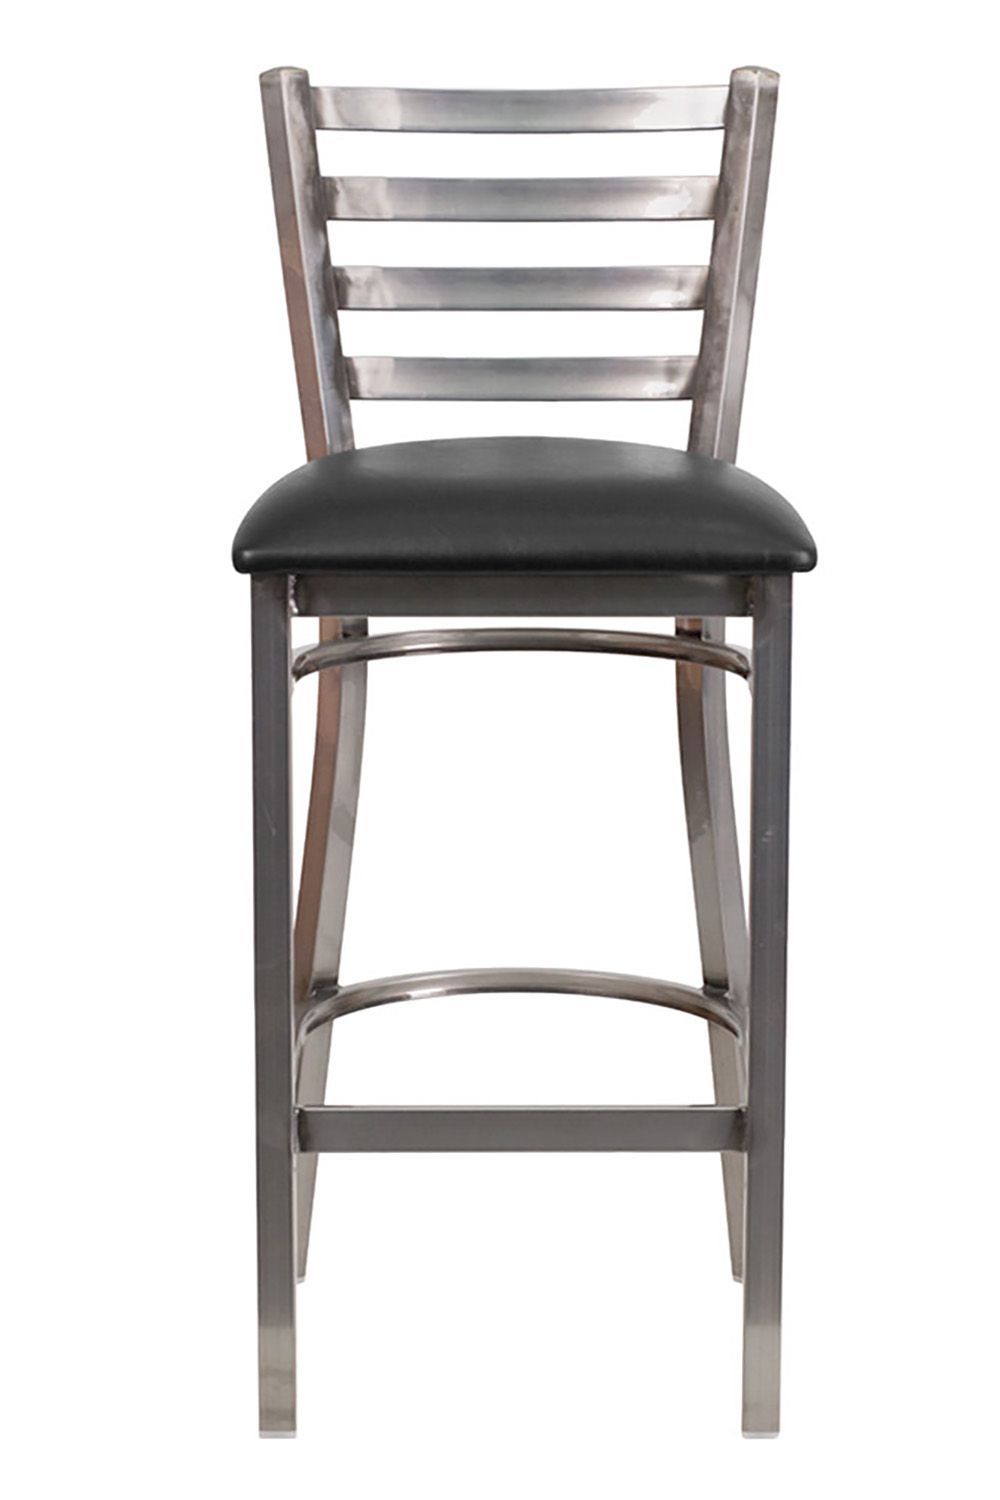 Fantastic Metallic Ladderback Bar Stool Gmtry Best Dining Table And Chair Ideas Images Gmtryco